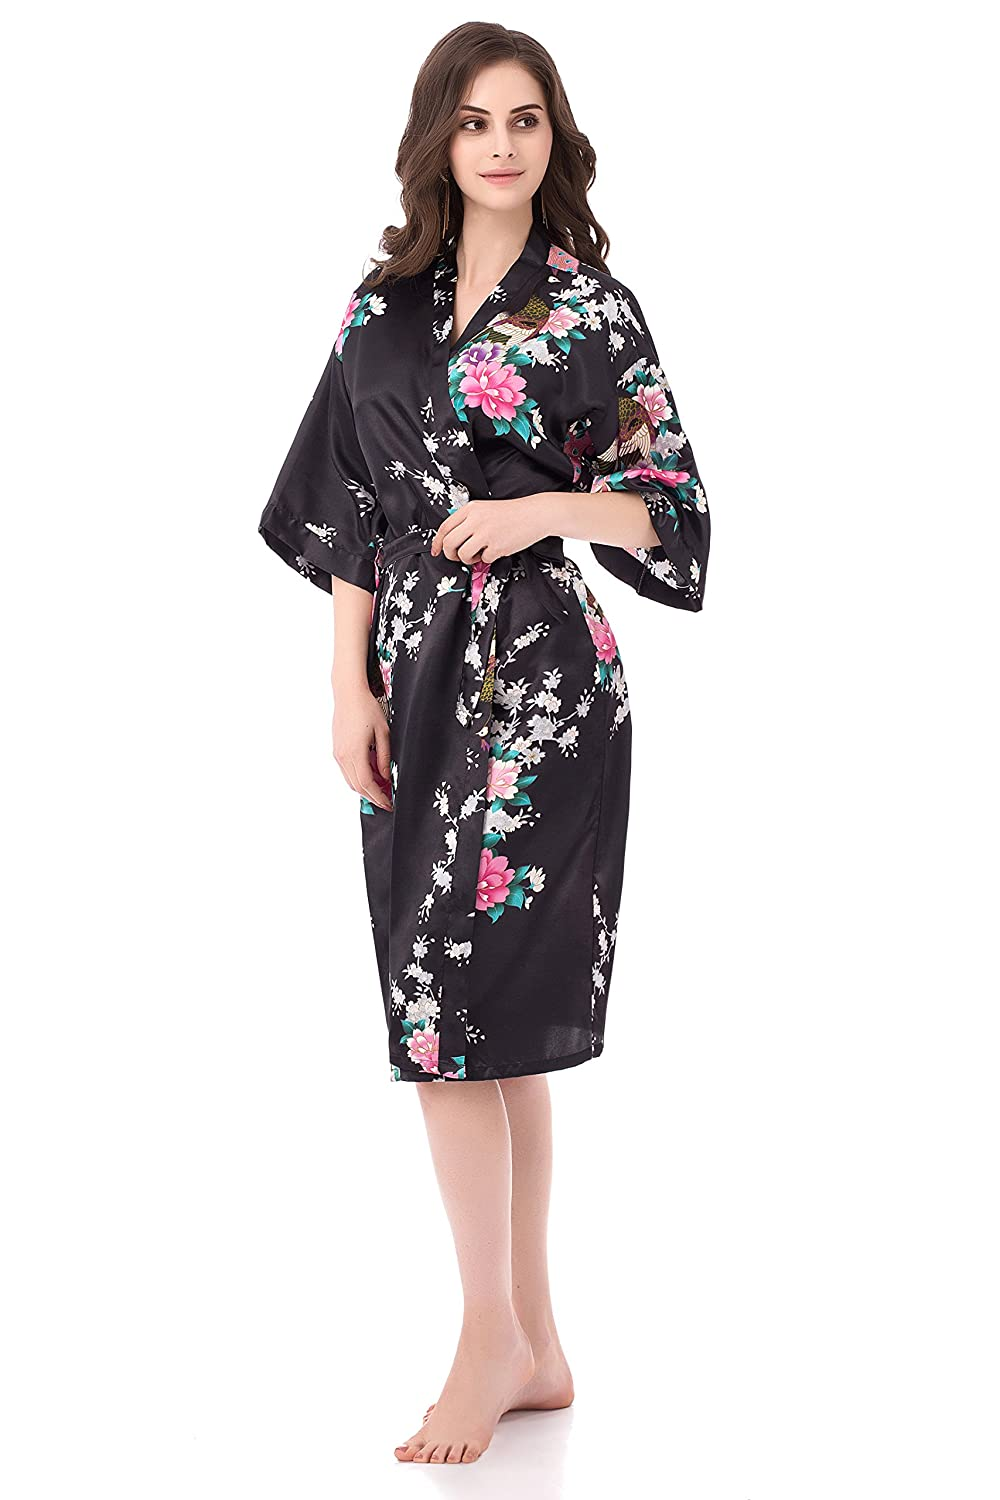 gusuqing Women s Printing Peacock Kimono Robe Short Sleeve Silk Bridal Robe   Amazon.ca  Clothing   Accessories fbdd07b6a